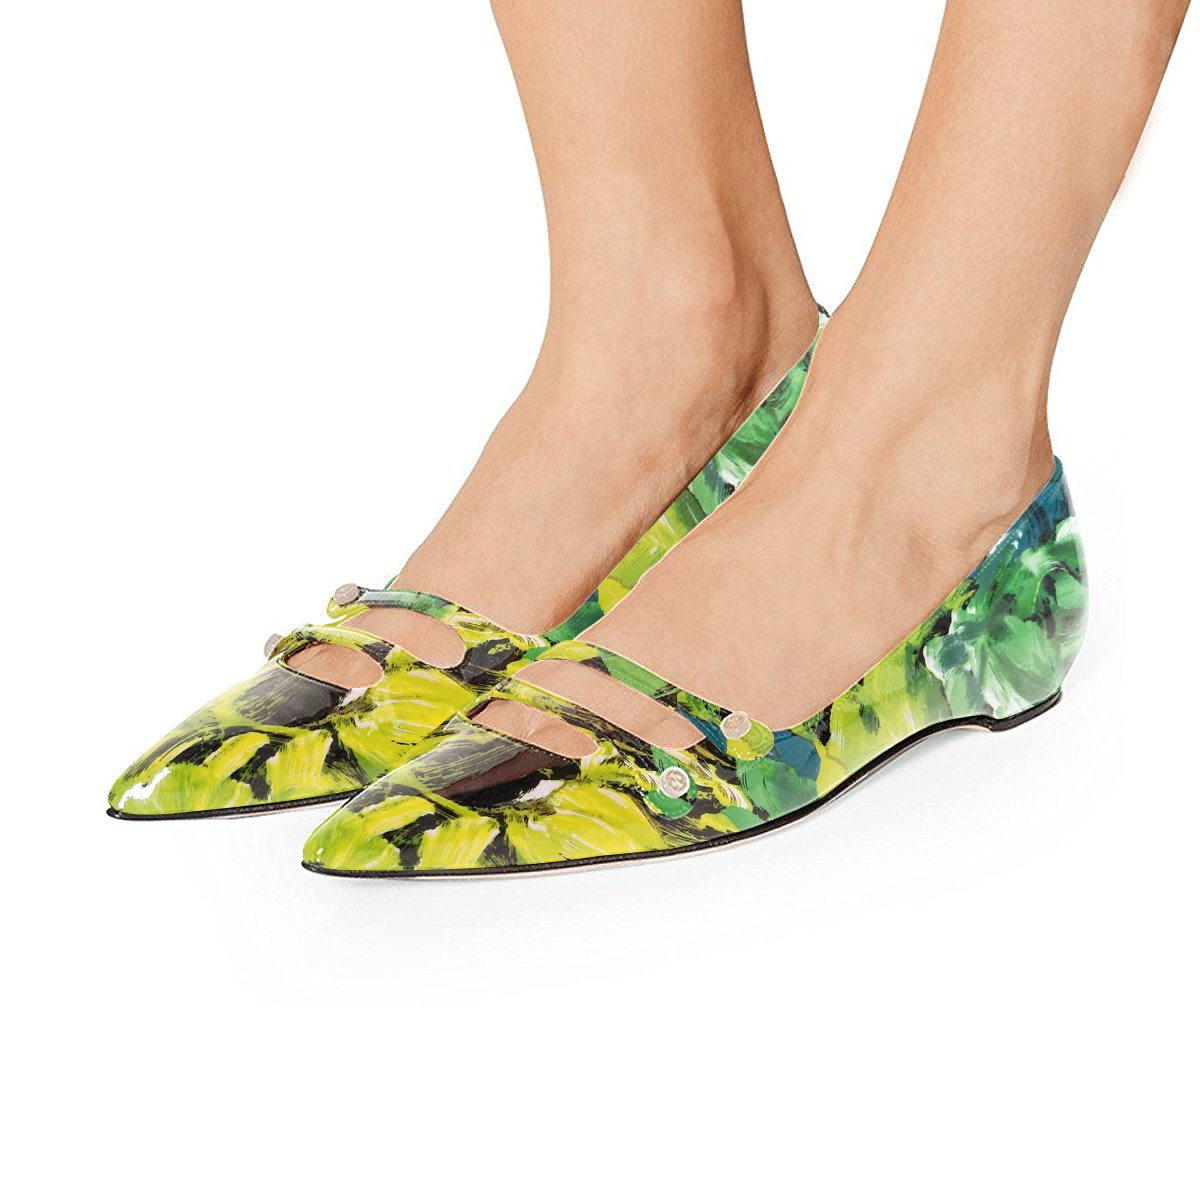 YDN Women Pointed Toe Slip on Flats Hidden Low Heels Pumps Comfort Shoes with Straps B07F88SZBF 15 M US|Green Floral